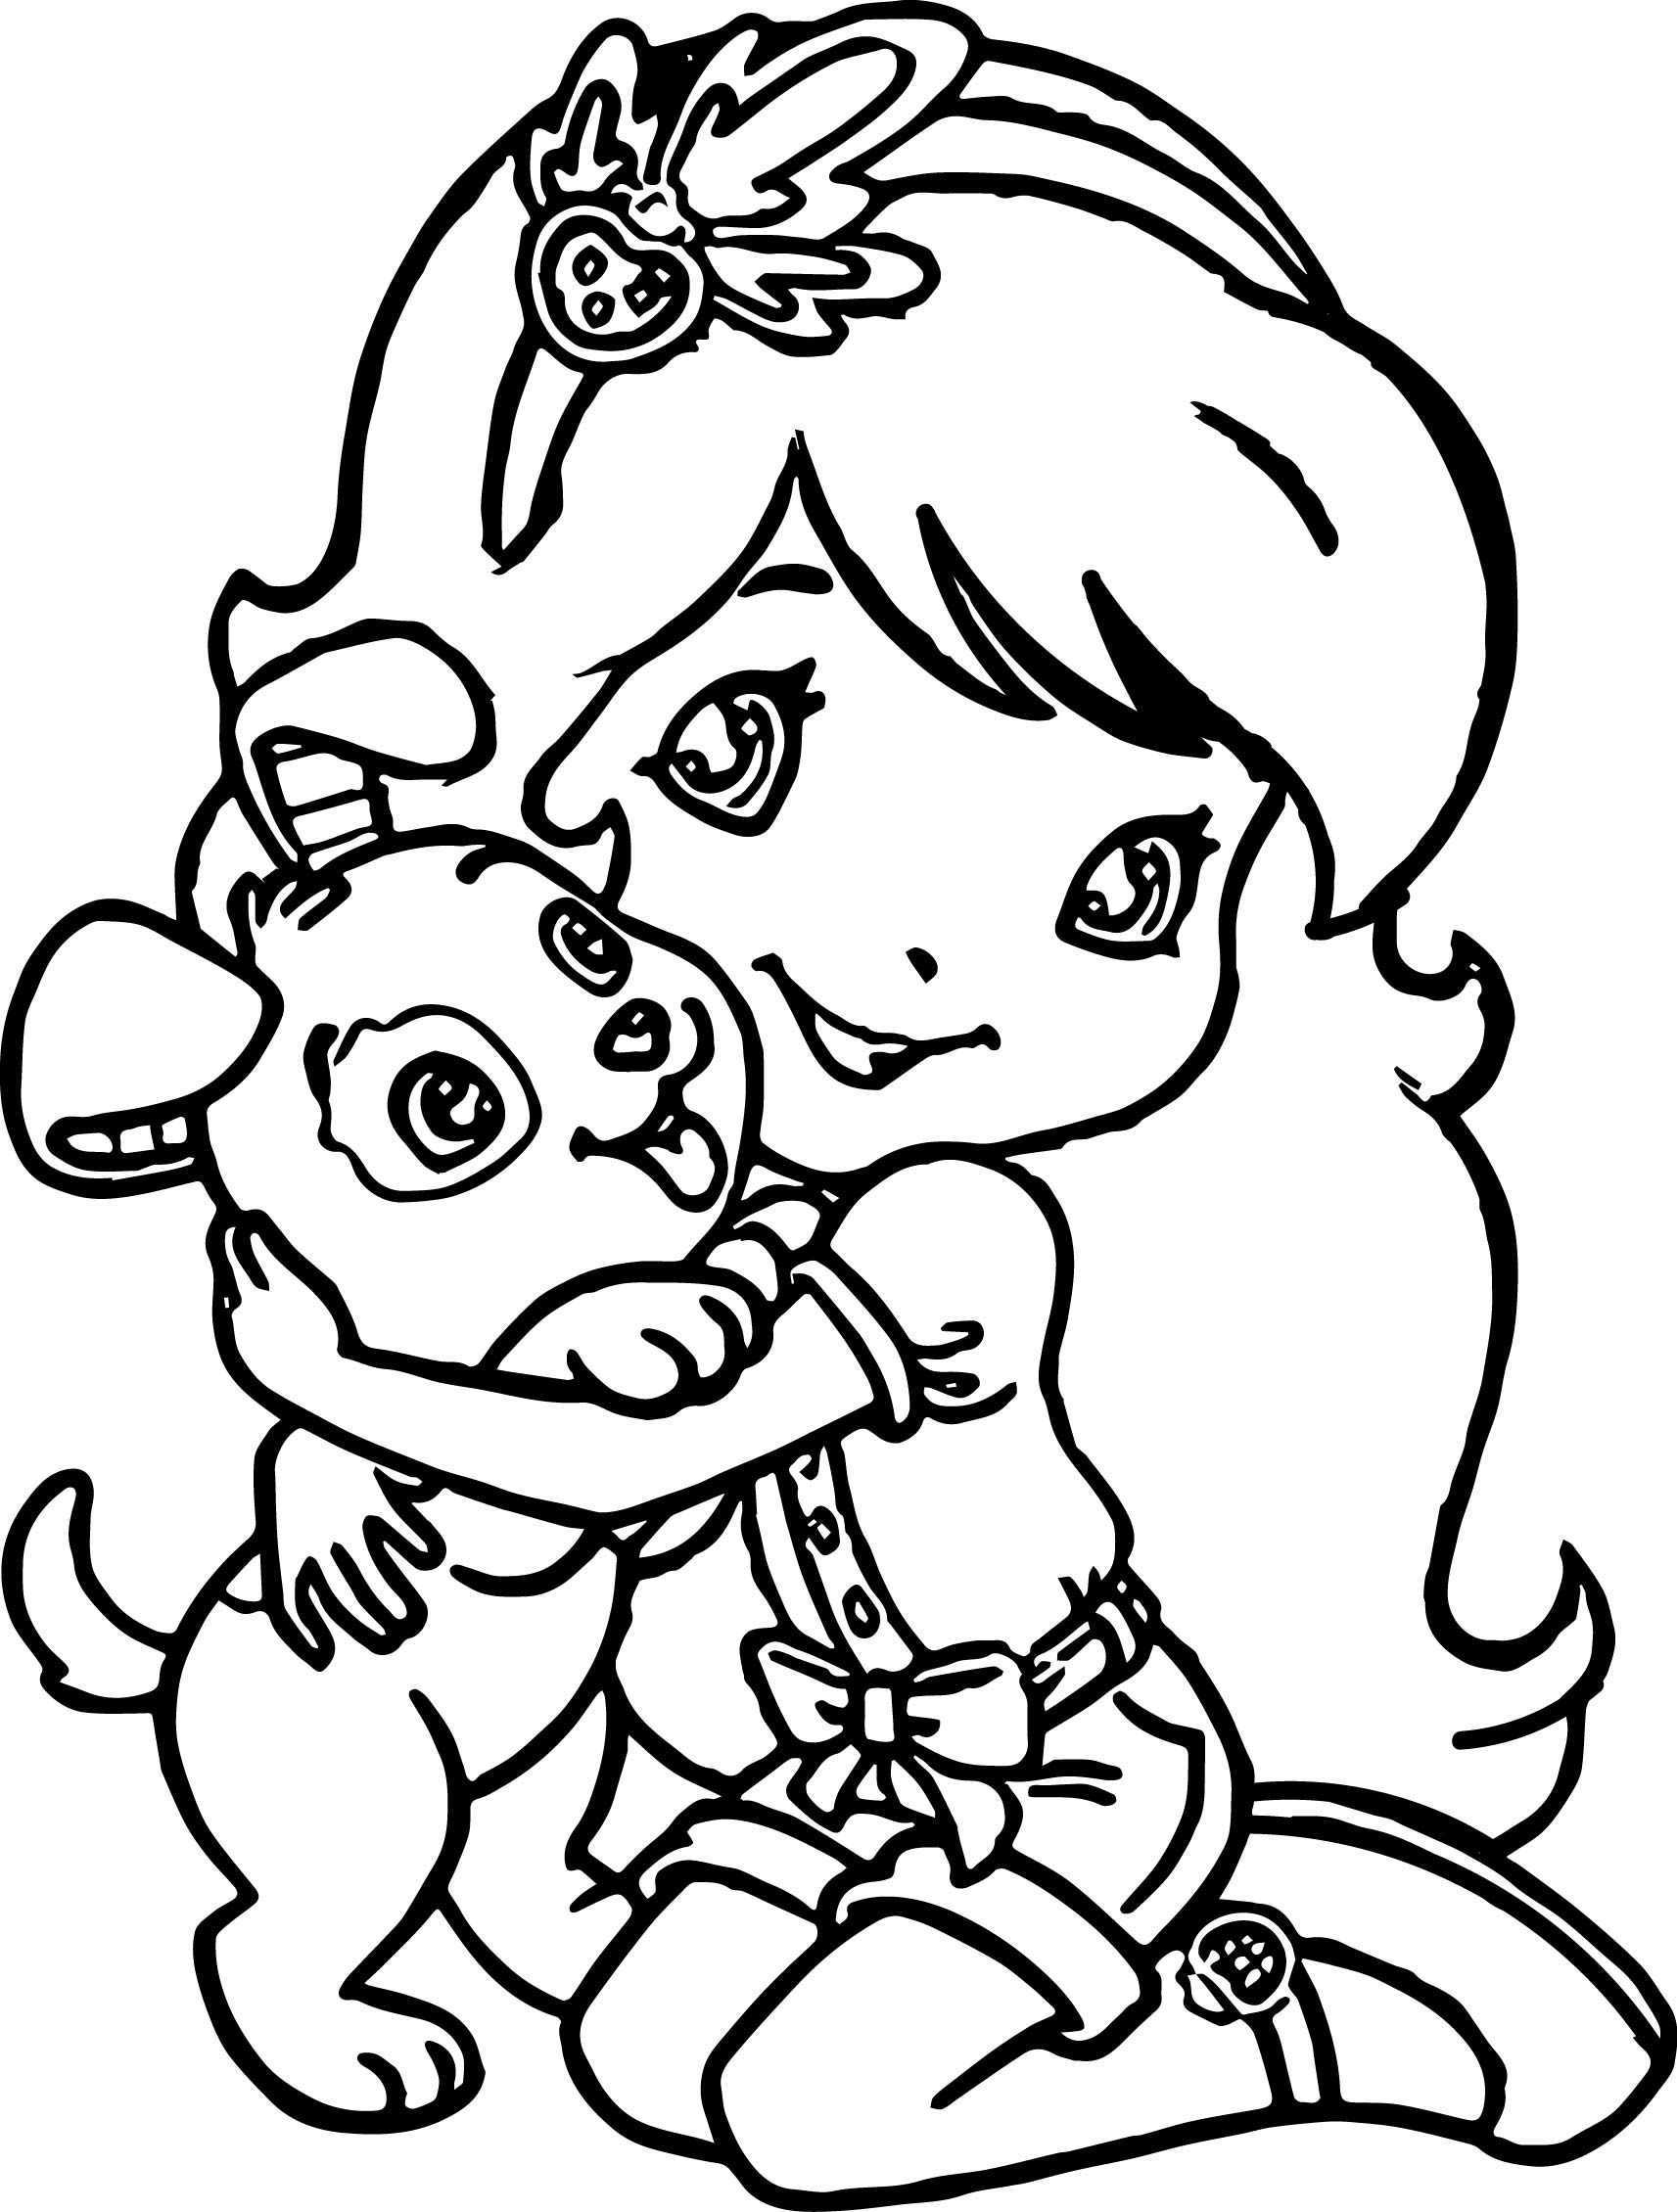 Detailed Dog Coloring Pages Girls